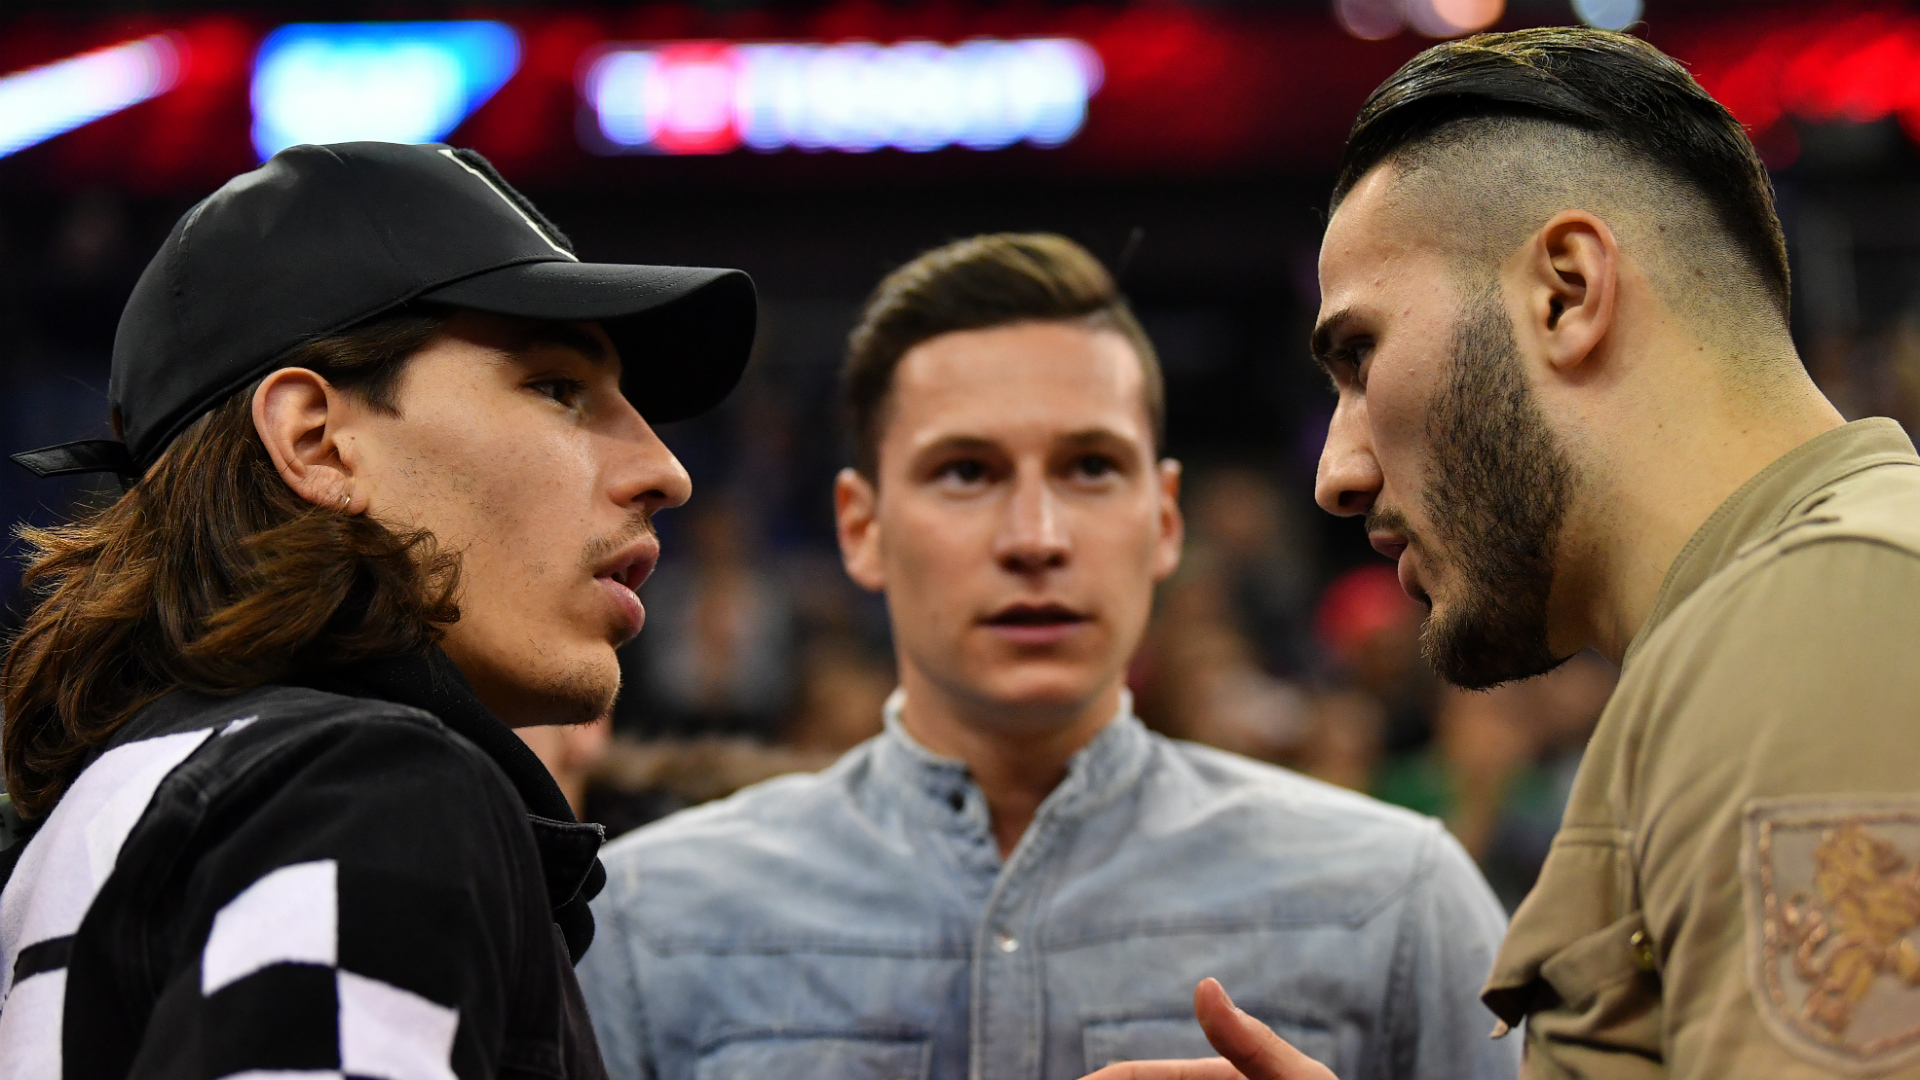 Hector Bellerin Julian Draxler Sead Kolasinac Boston Celtics vs Philadelphia 76ers